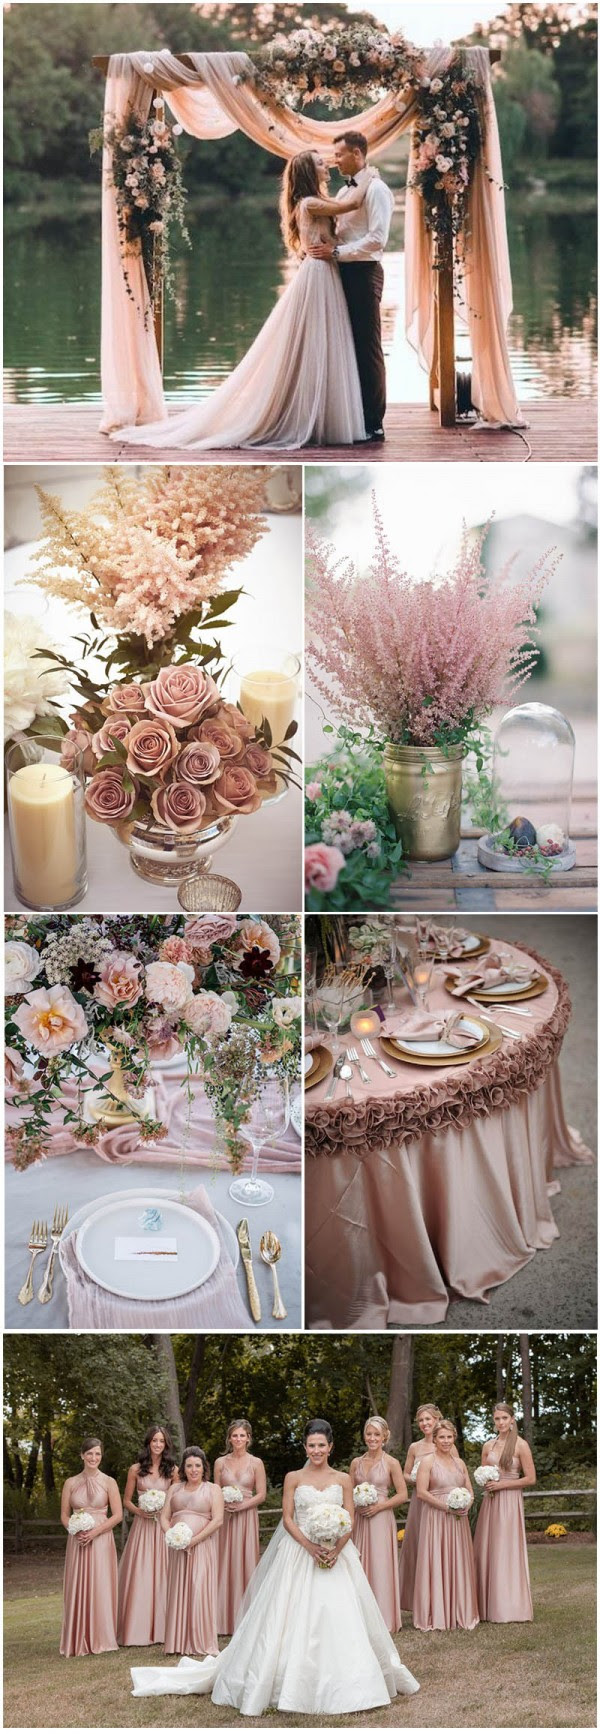 18 Romantic Dusty Rose Wedding Color Ideas for 2019 ...